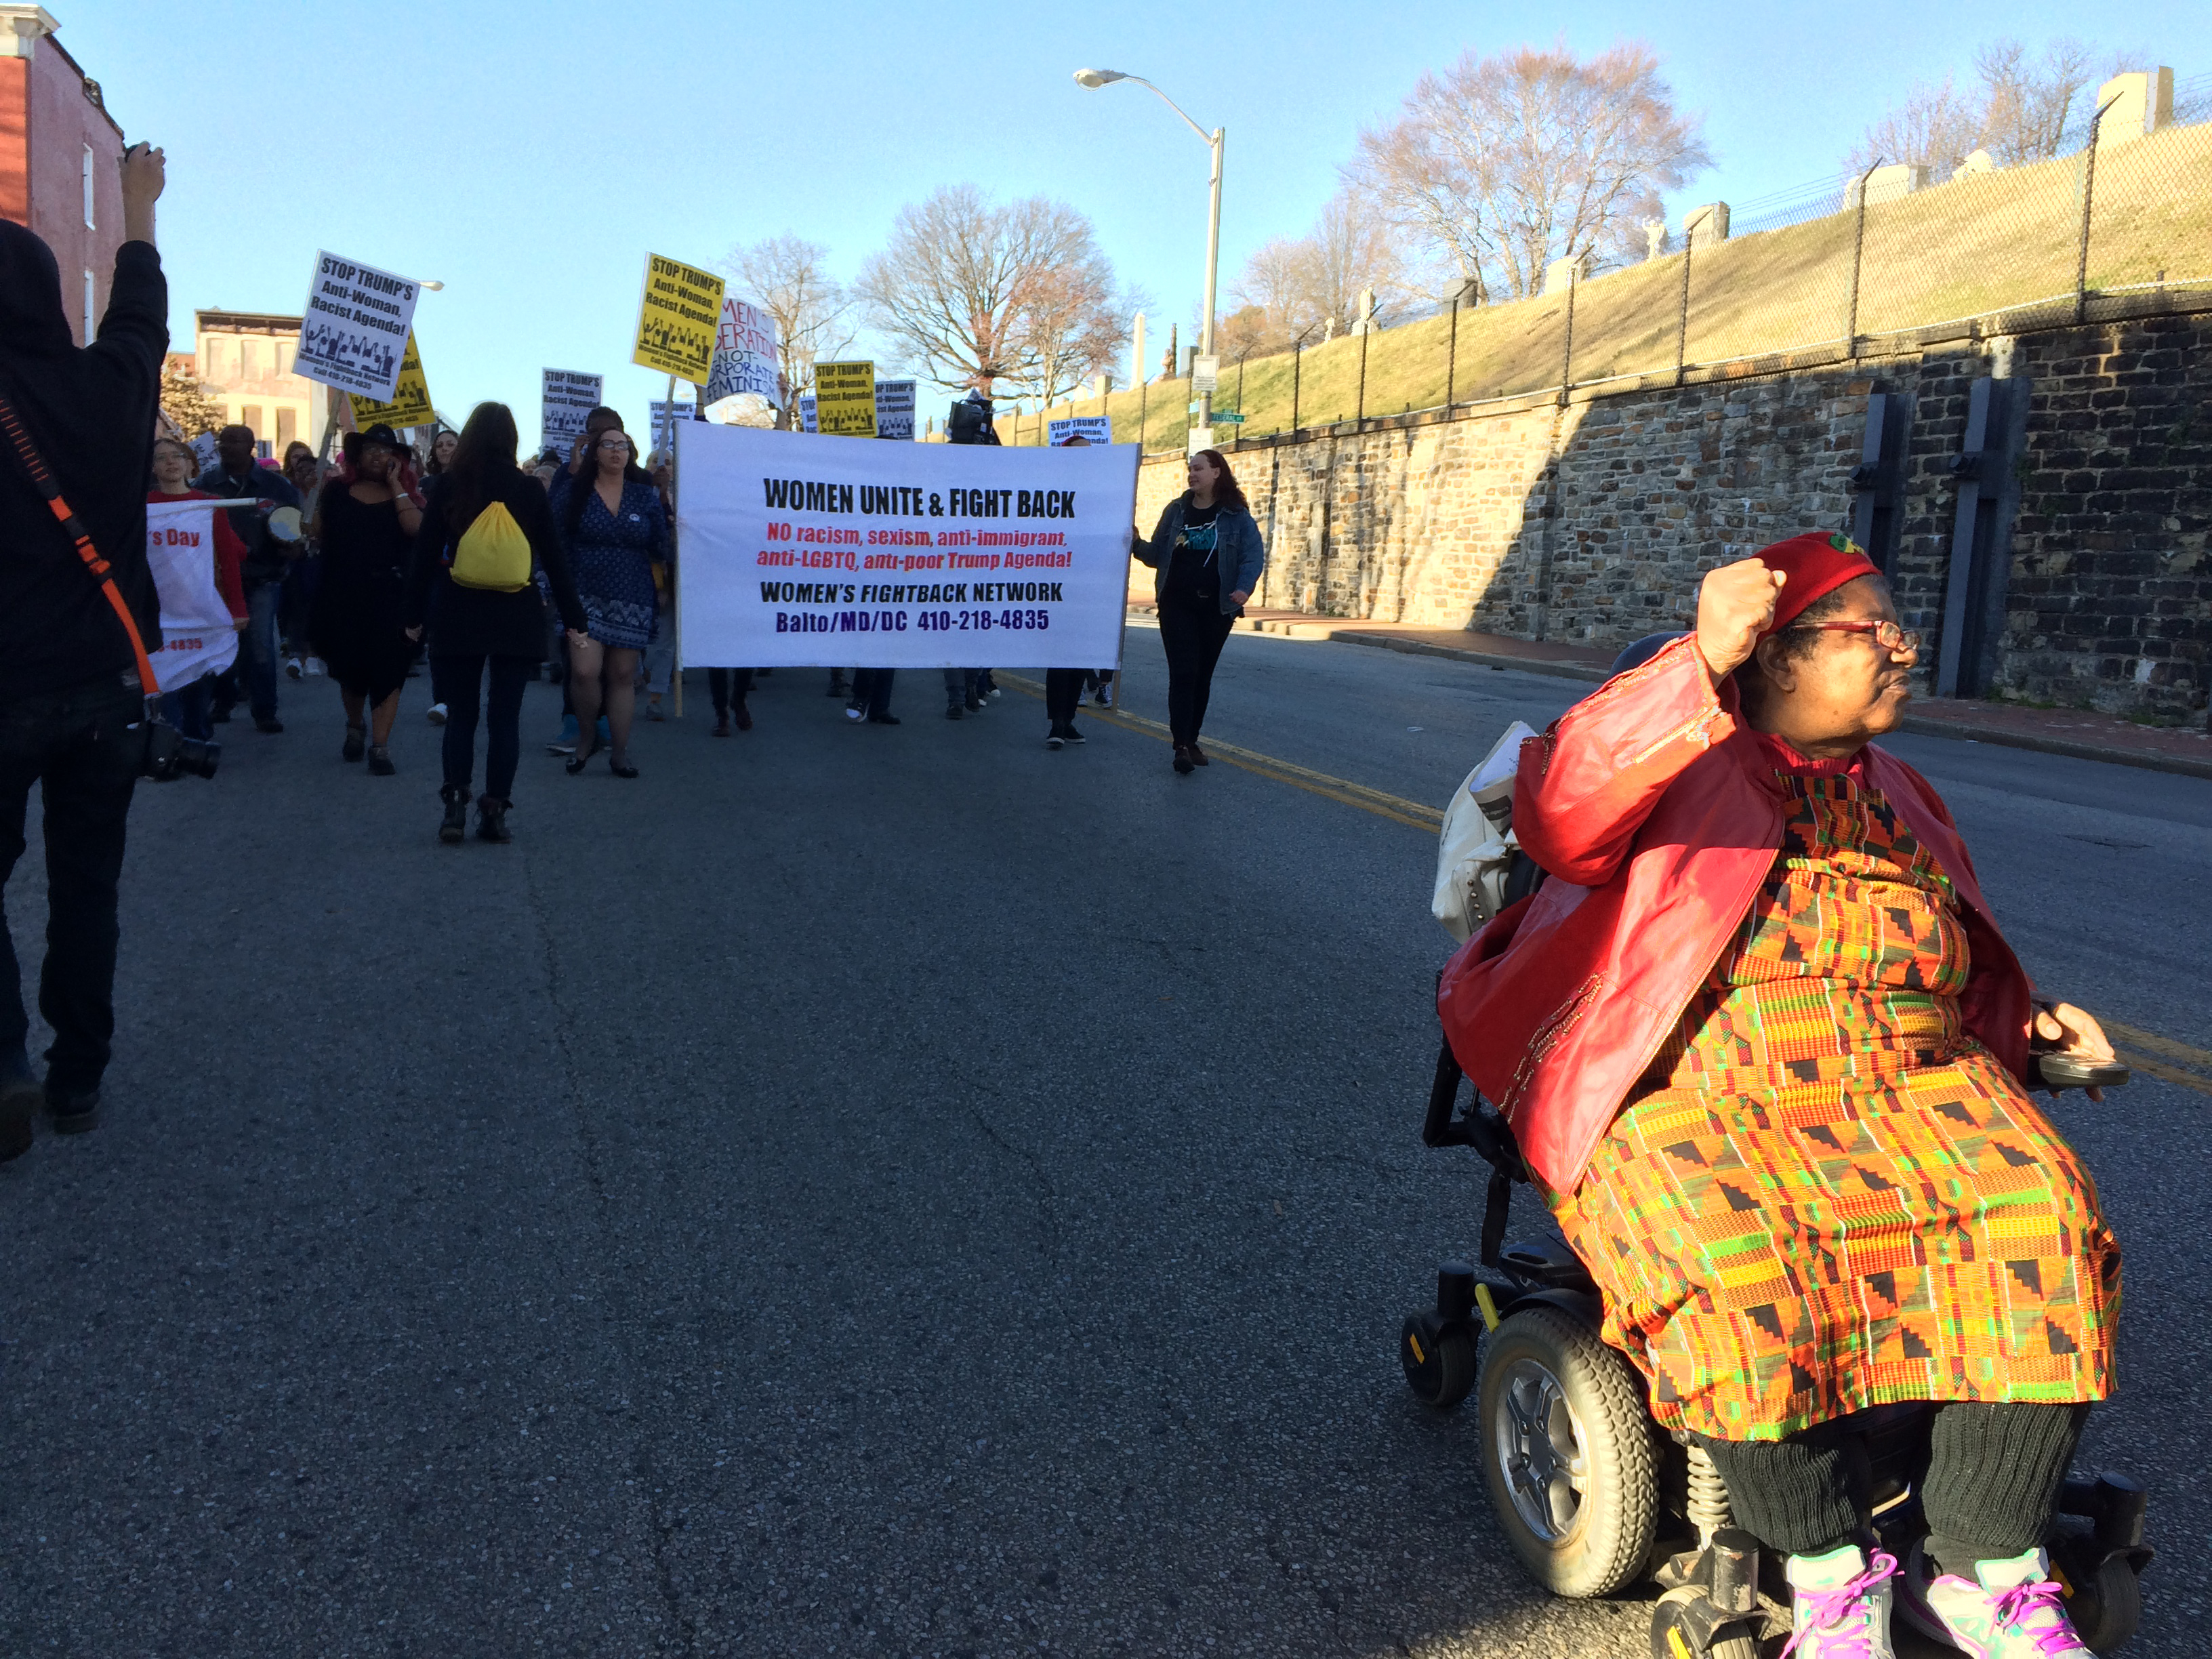 Annie Chambers, right, leading the protest. Photo by Katie Keough.